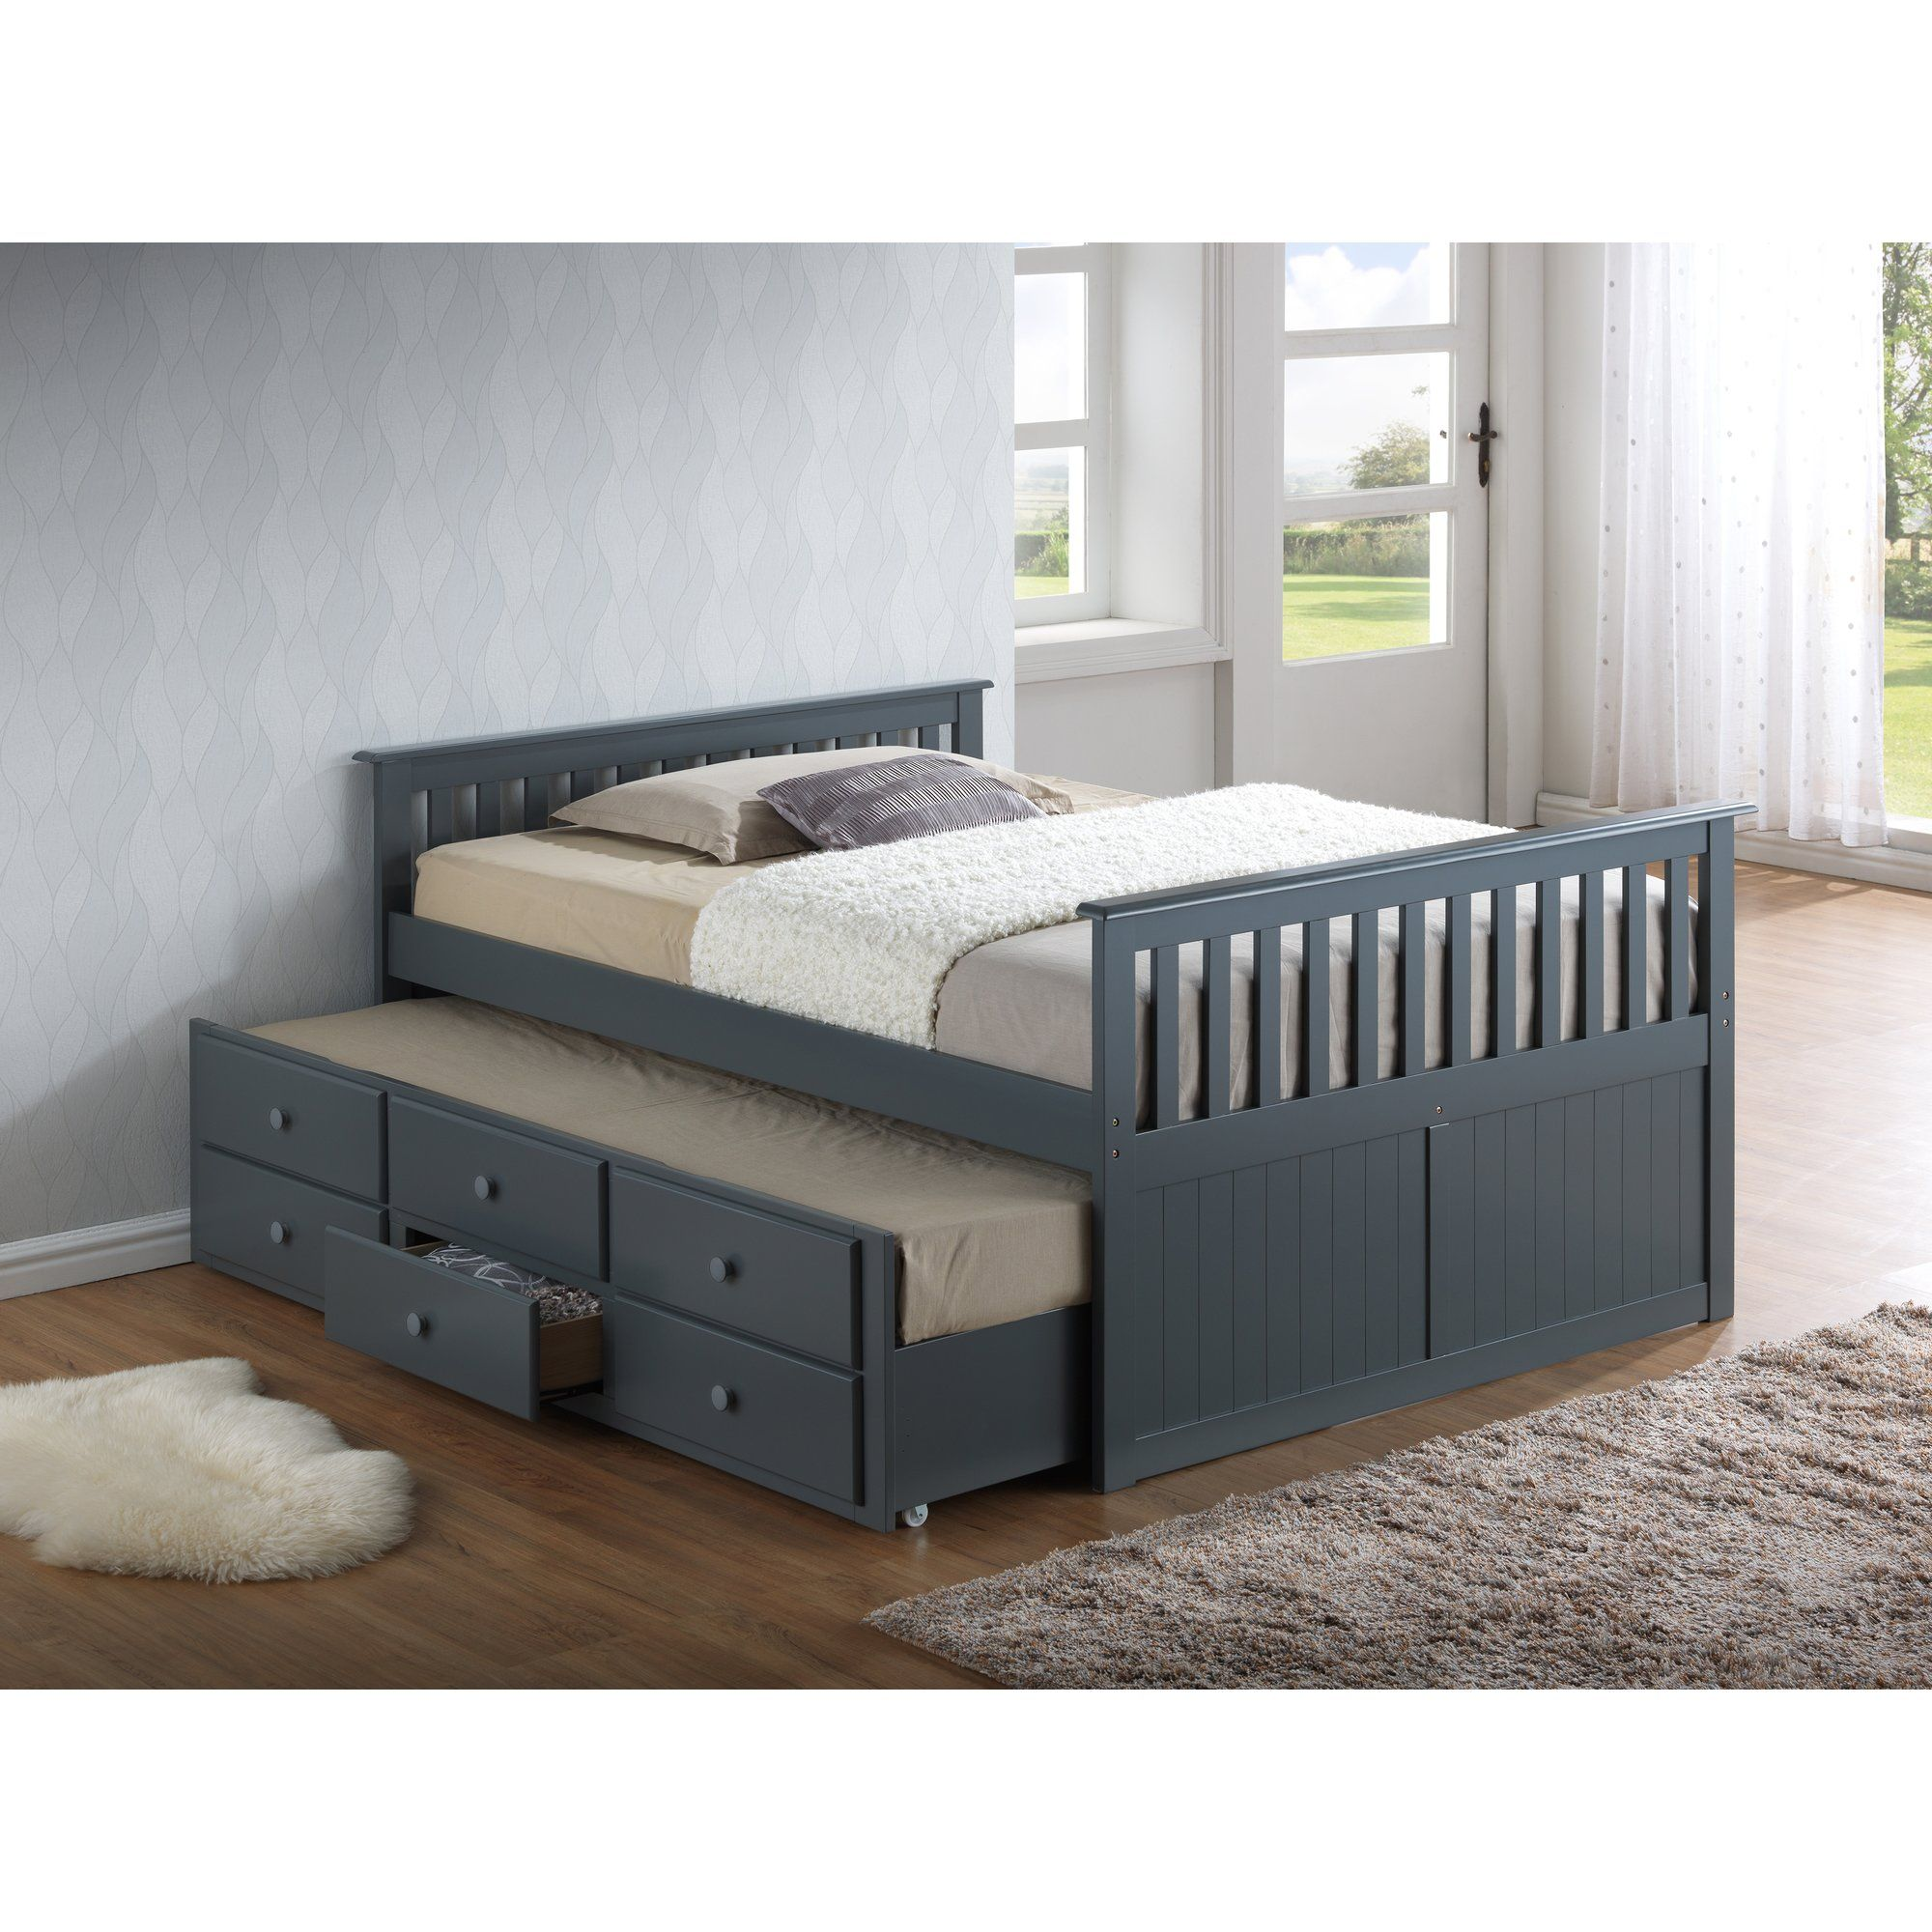 The Broyhill Kids Marco Island Captain\'s Bed features a pull-out ...